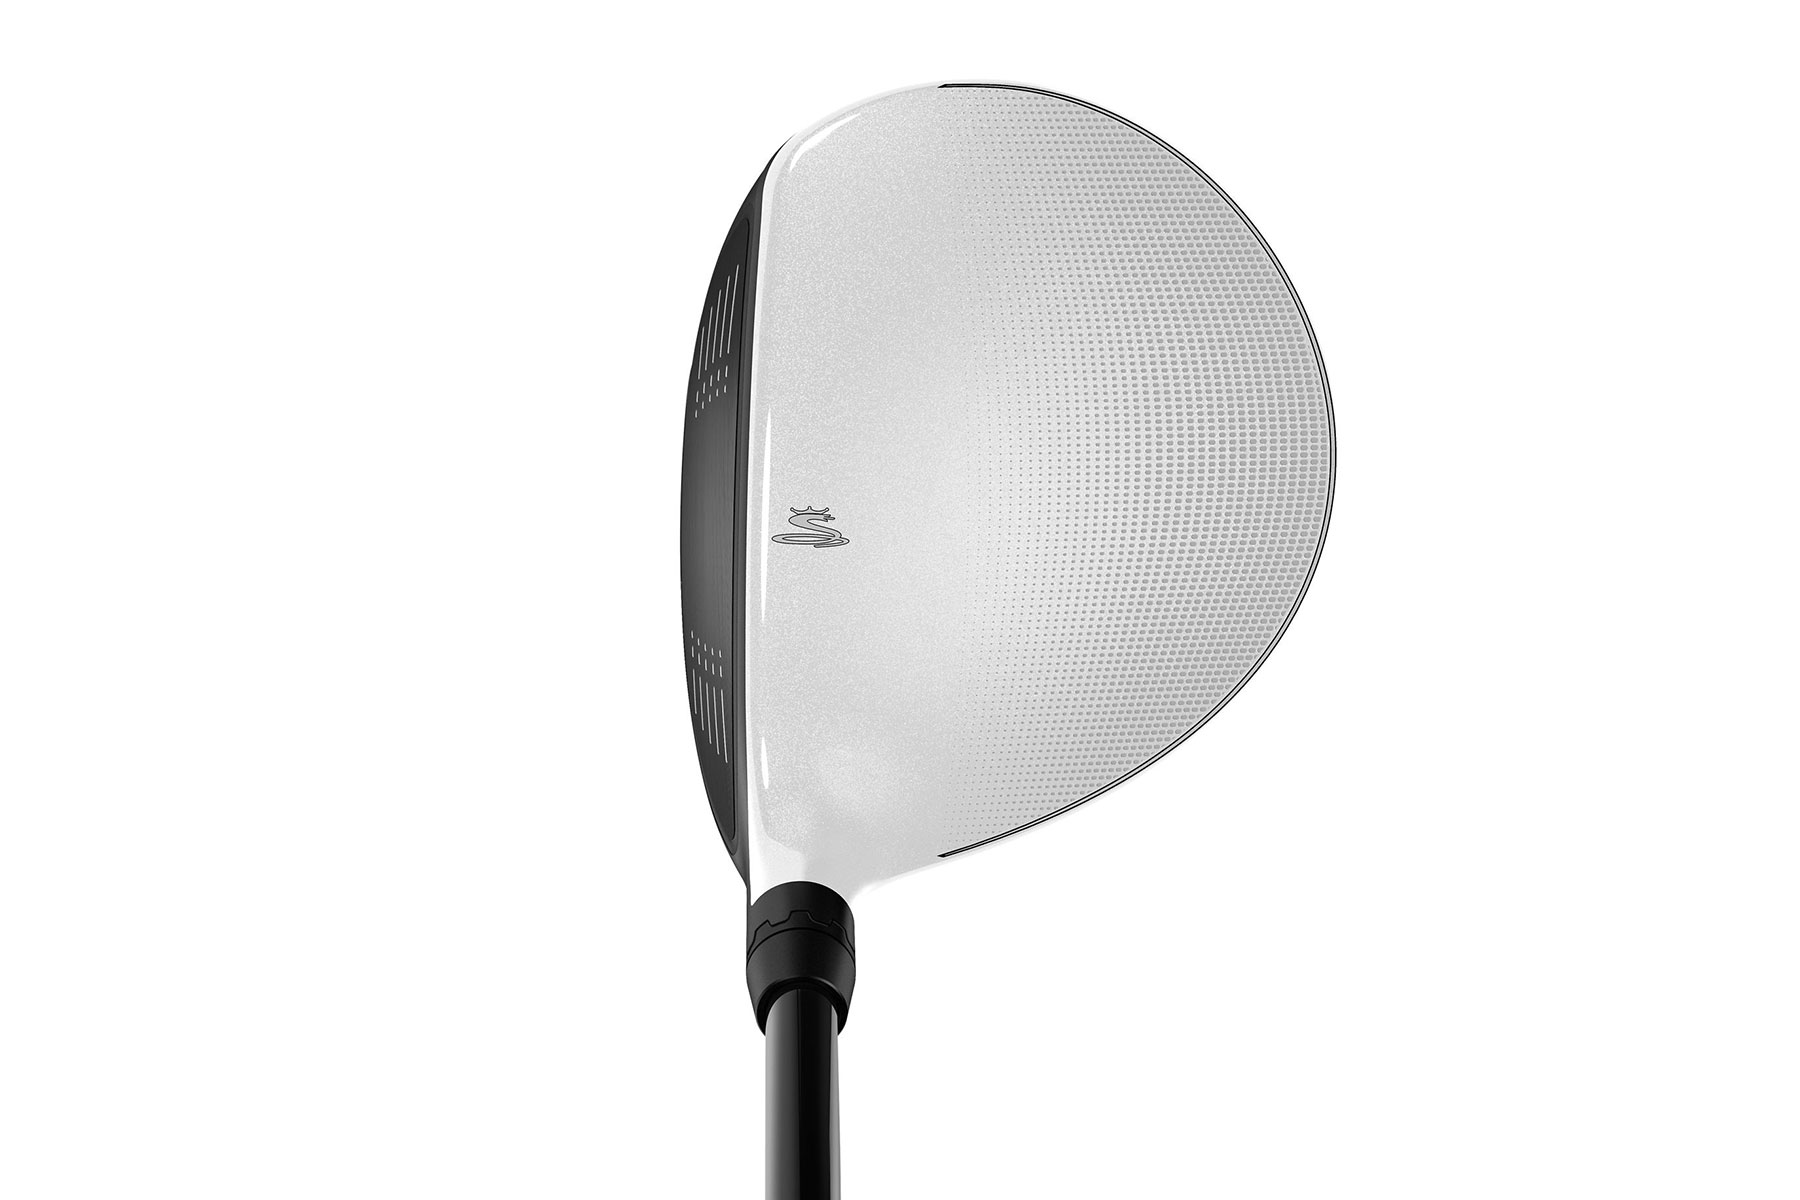 Cobra Golf King F6 White Fairway Wood From American Golf